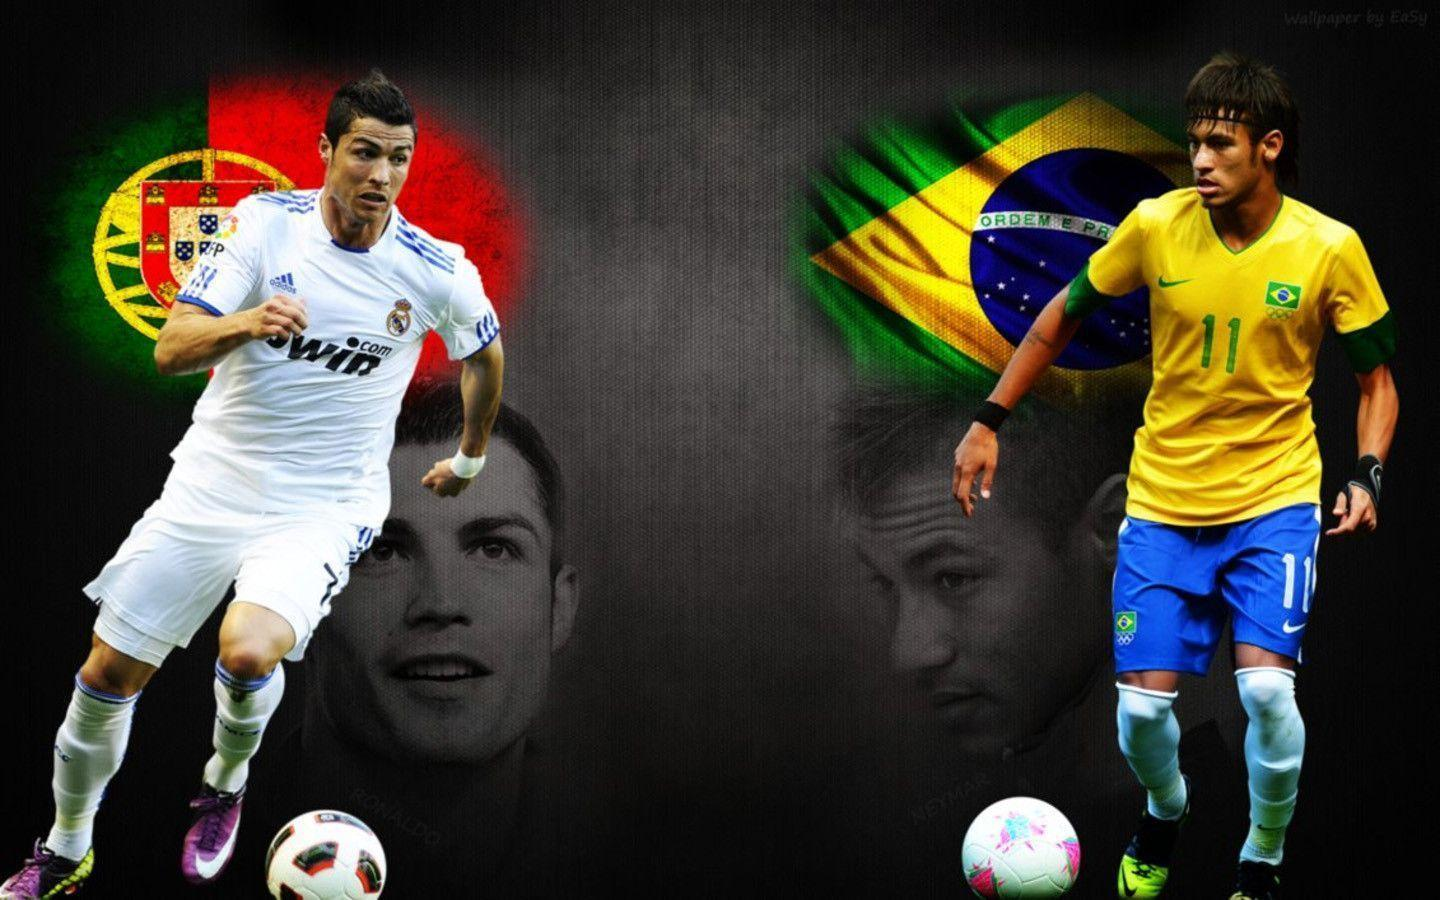 Neymar VS Cristiano Ronaldo high resolution image for desktop